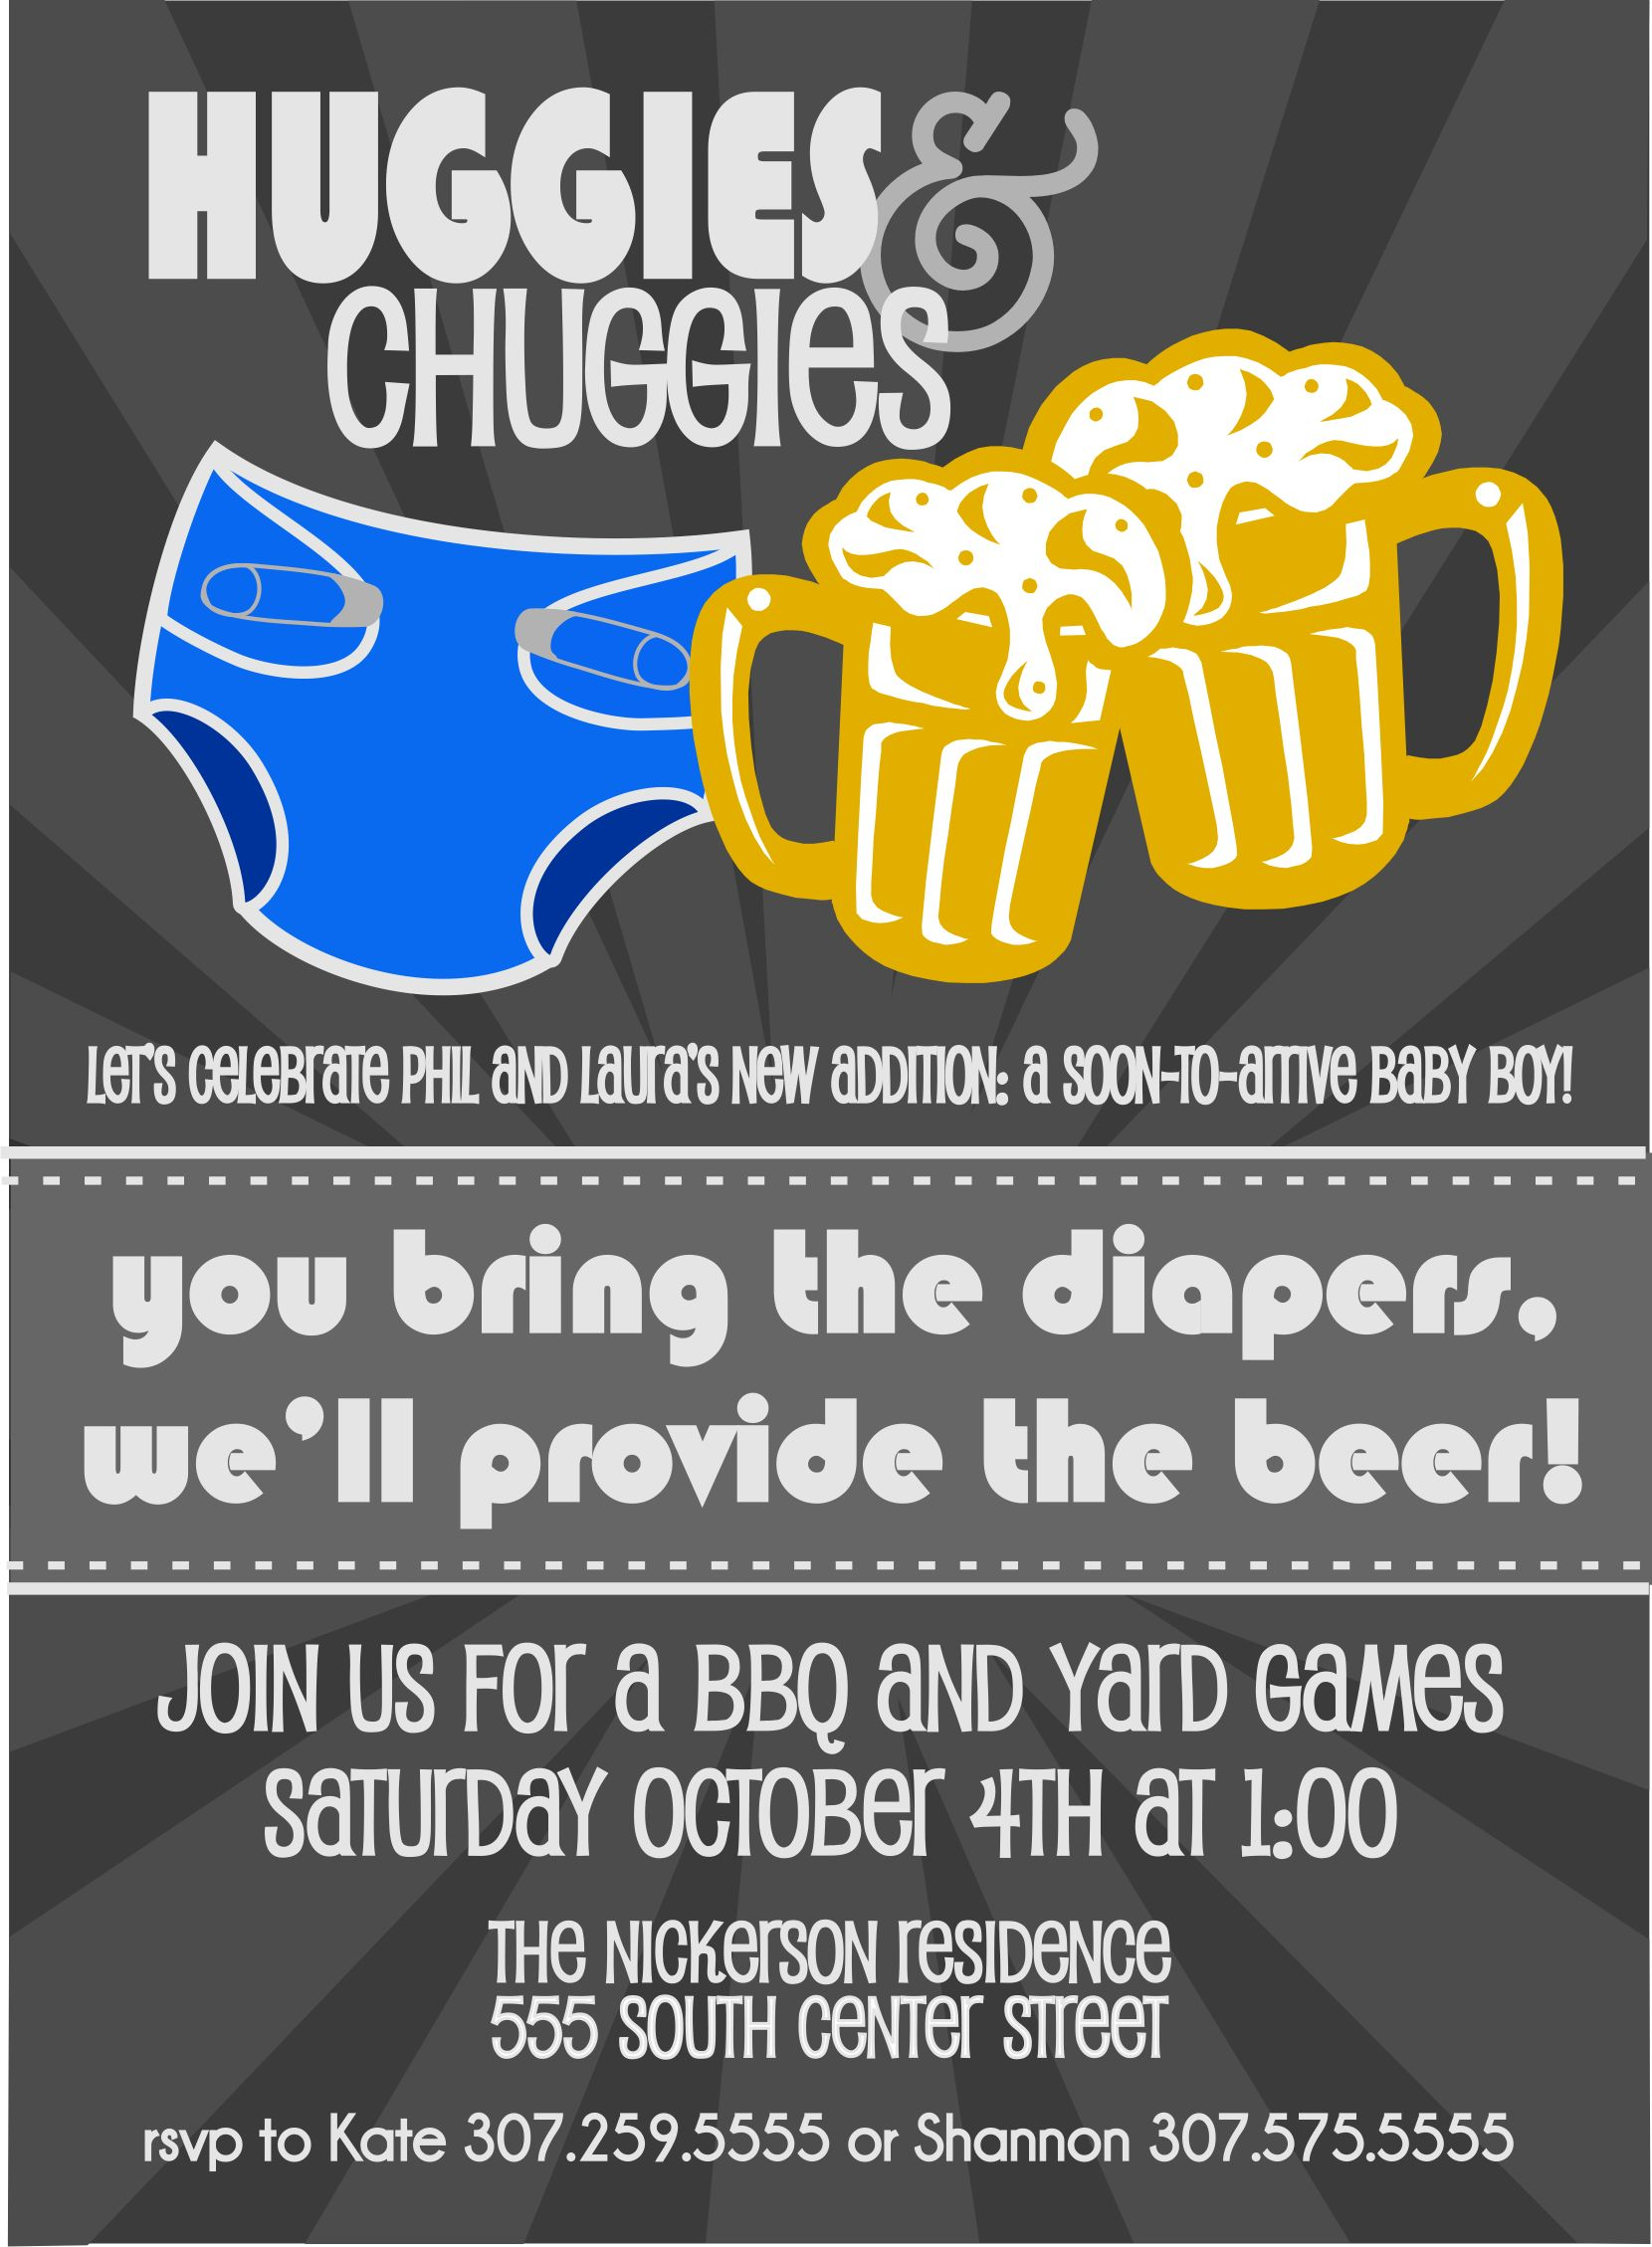 Huggies for Chuggies Diaper Party Invitation by ChevronDreams